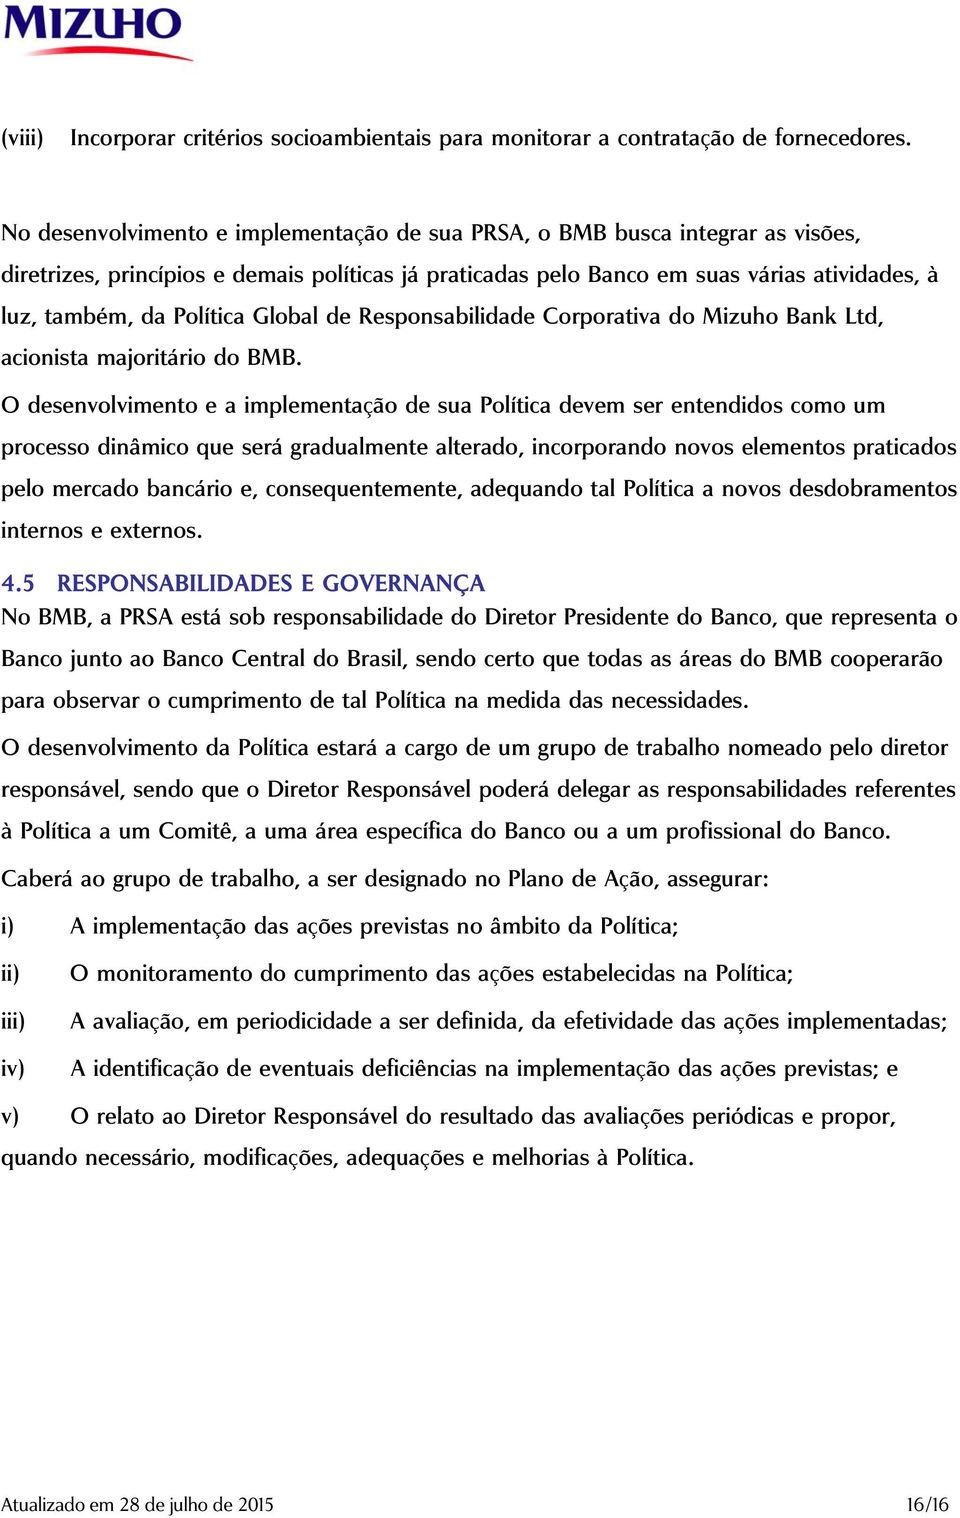 Política Global de Responsabilidade Corporativa do Mizuho Bank Ltd, acionista majoritário do BMB.